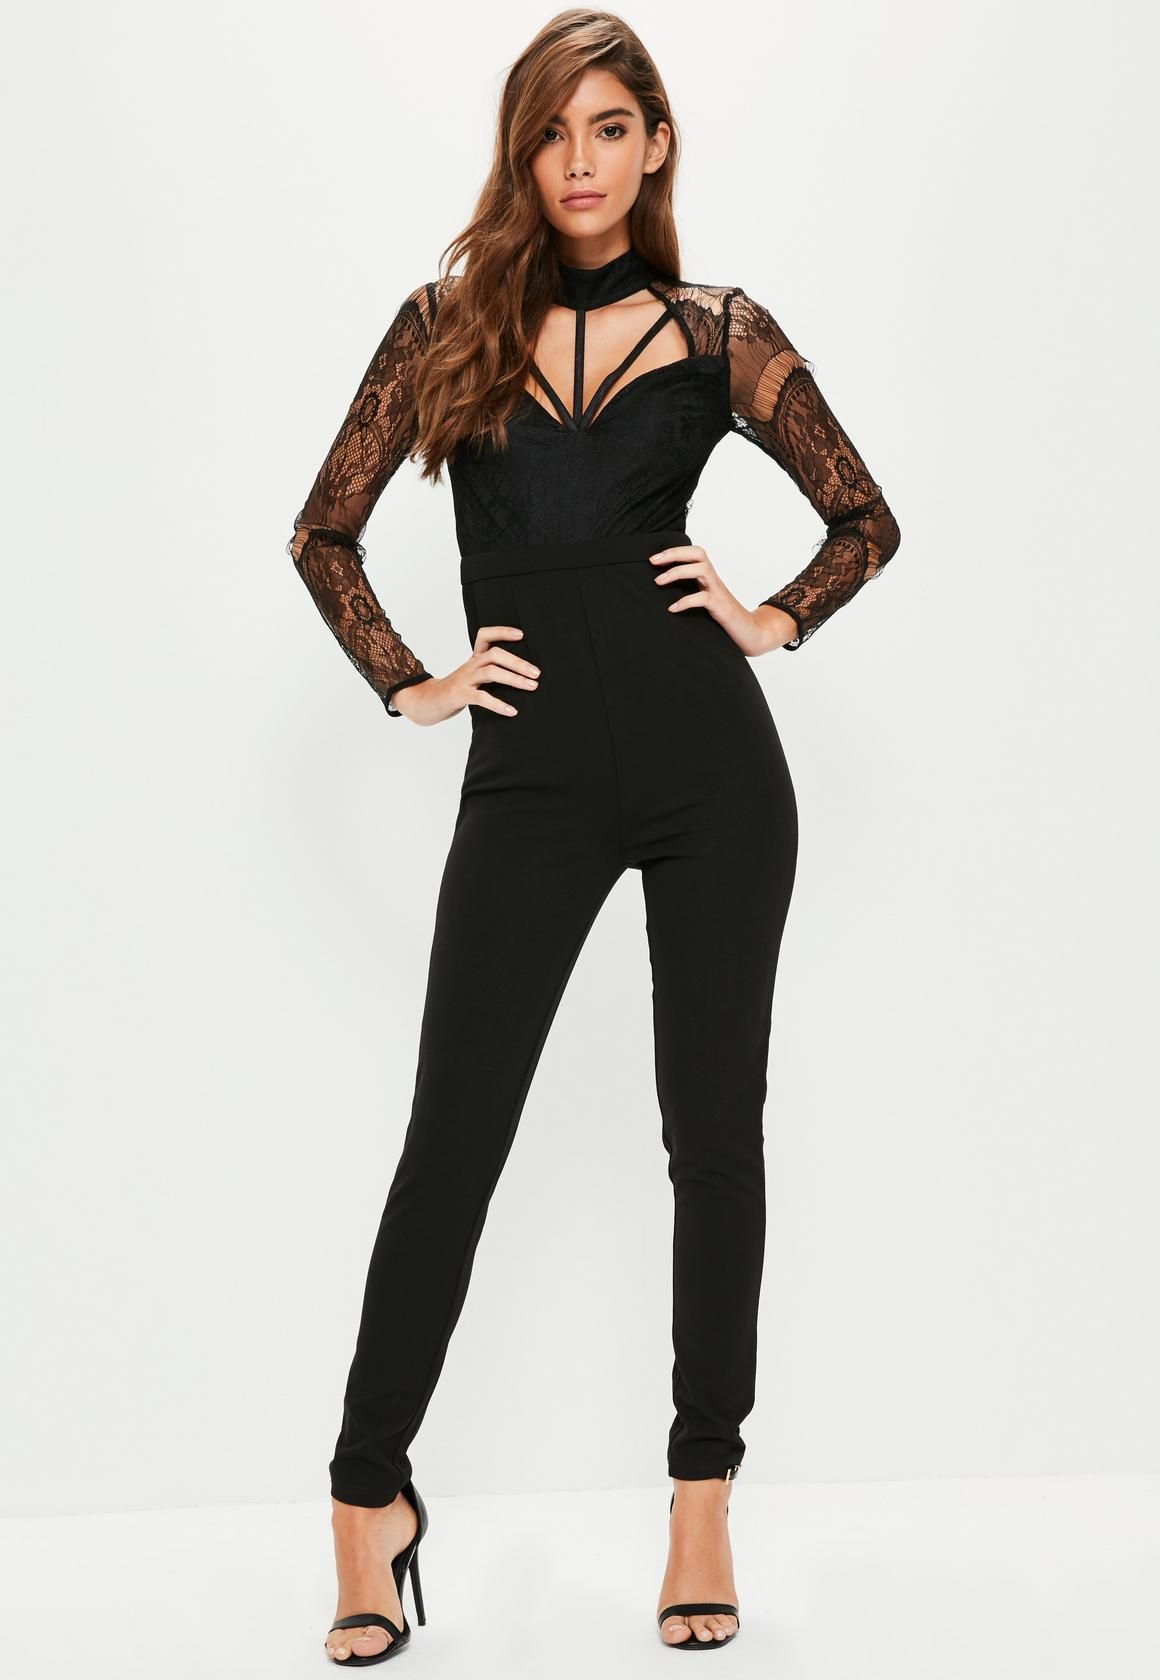 quality products undefeated x another chance Black Harness Lace Long Sleeve Jumpsuit | robes en 2019 ...